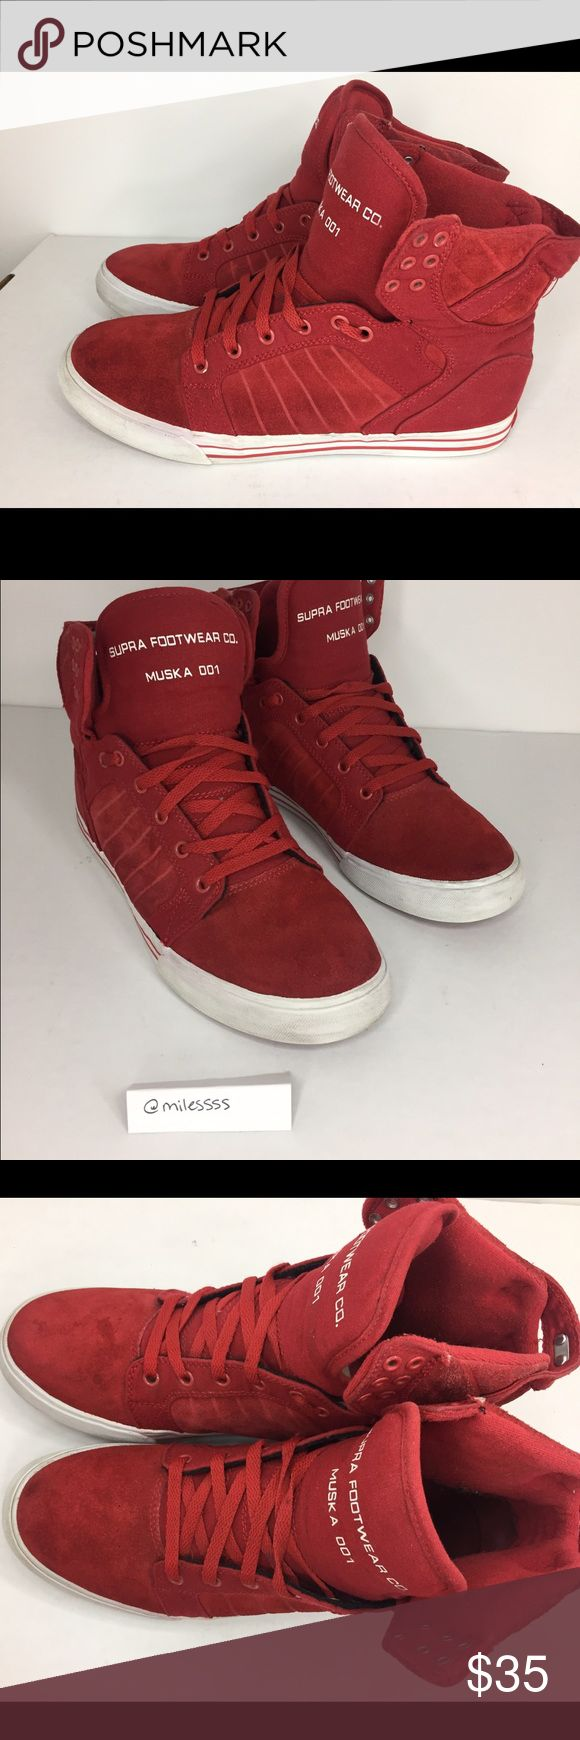 Suede Red Supra High Top Sneakers SZ 11 Red Suede Skytops - Used gently but in good shape. Light wear Supra Shoes Sneakers